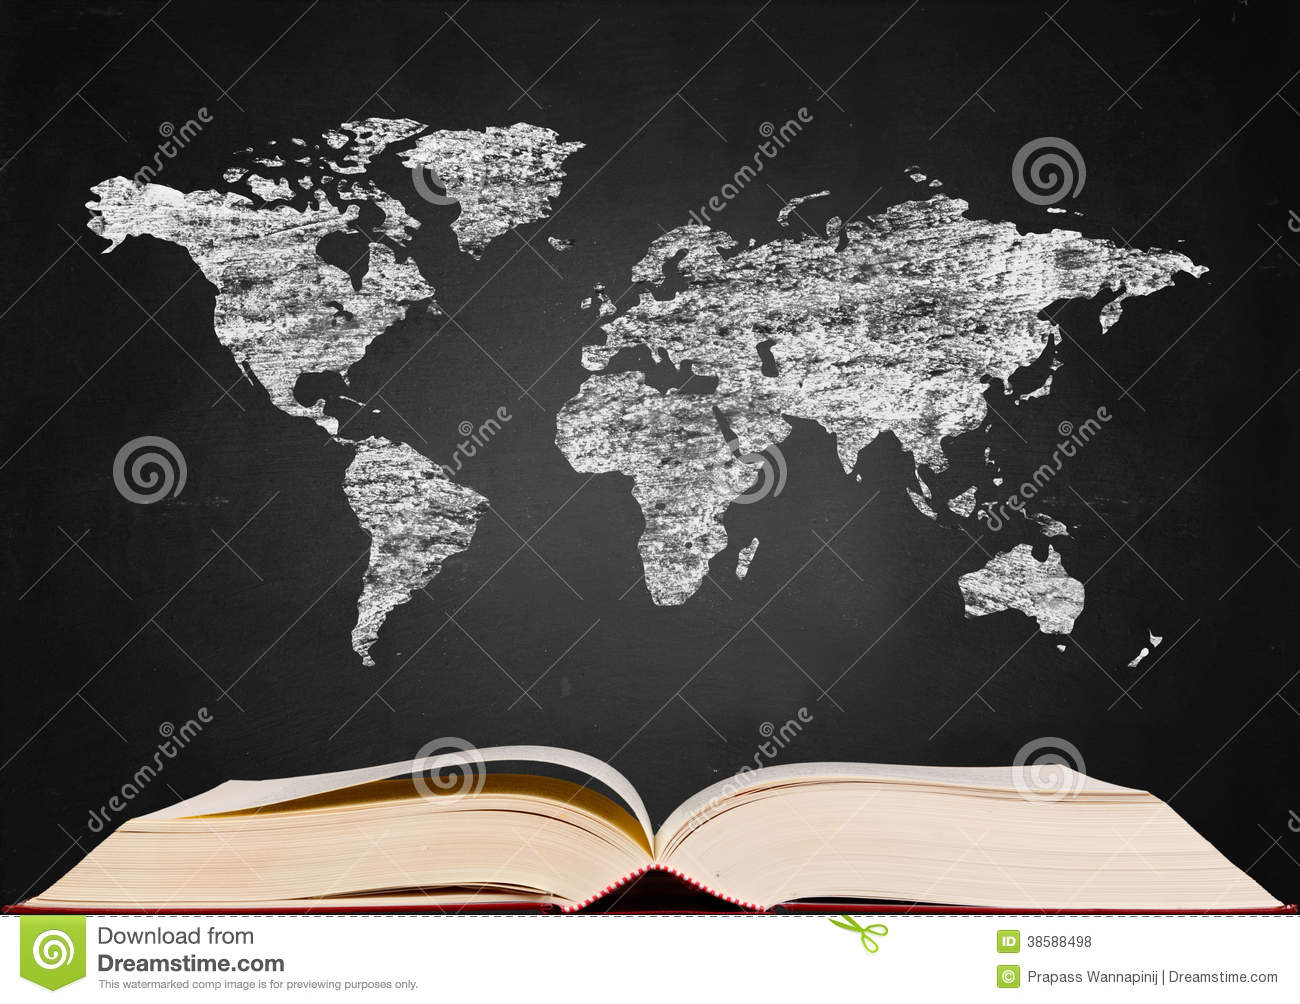 World map on blackboard stock illustration illustration of black world map on blackboard royalty free stock photo gumiabroncs Image collections